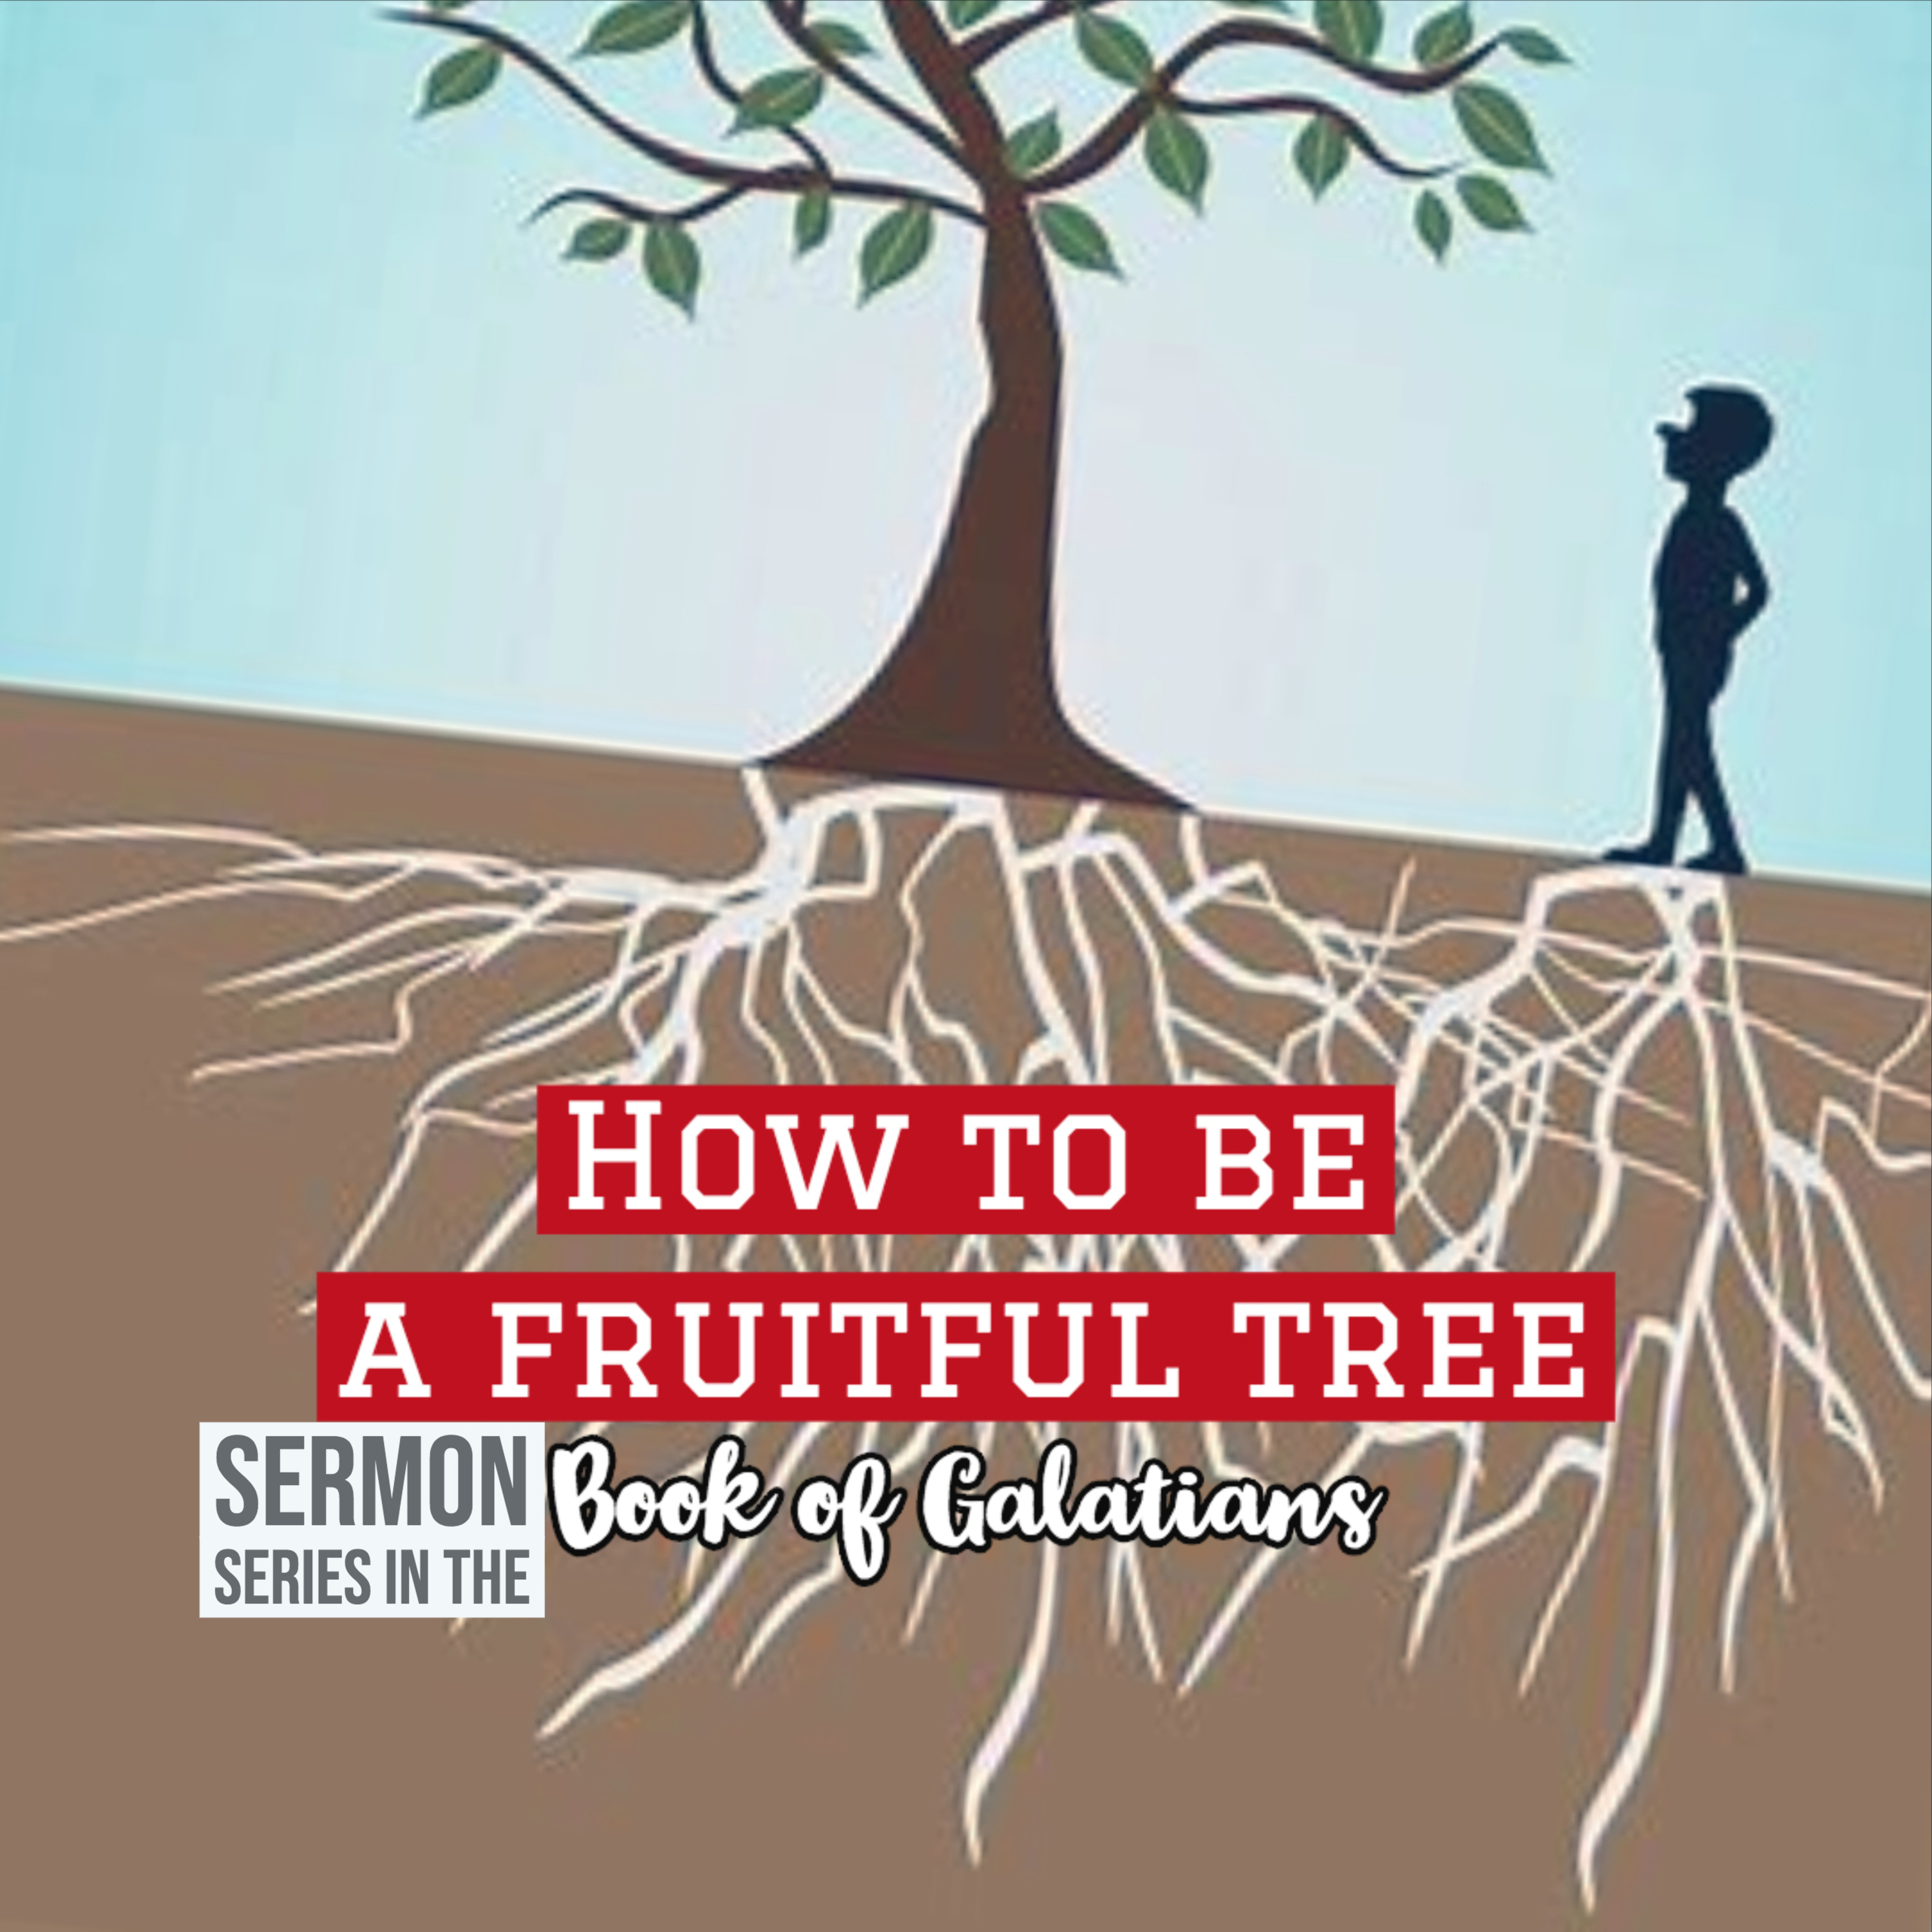 Facts about freedom Sermon series of book of Galatians